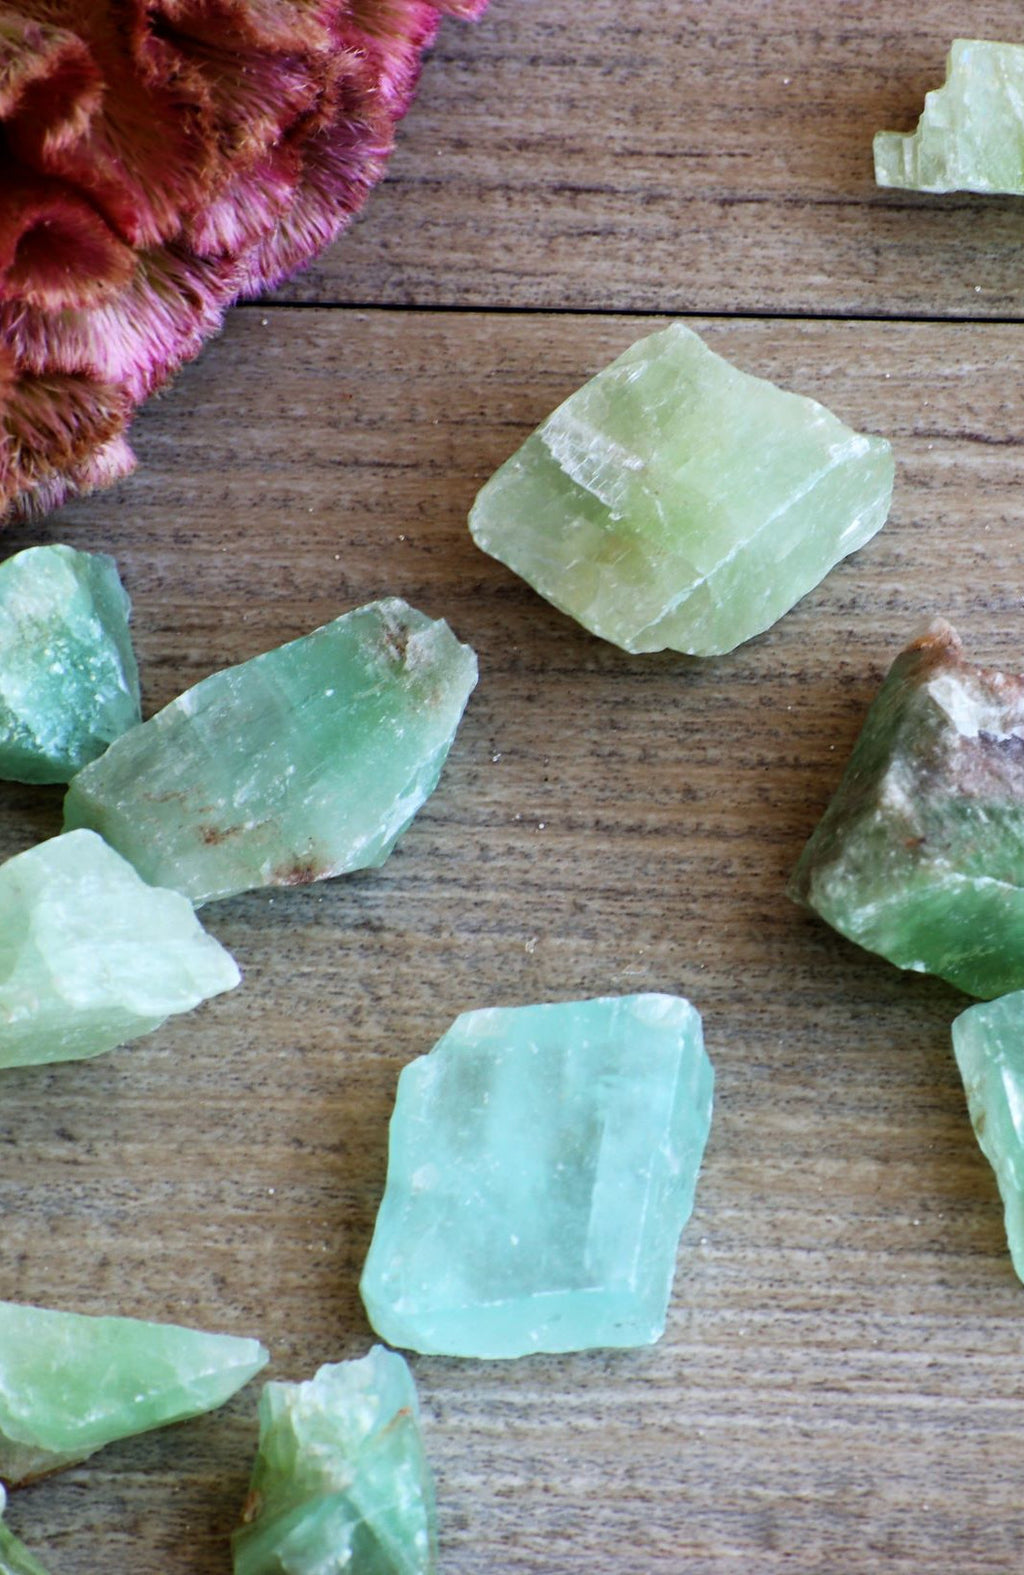 Green Calcite Tumbled Stone